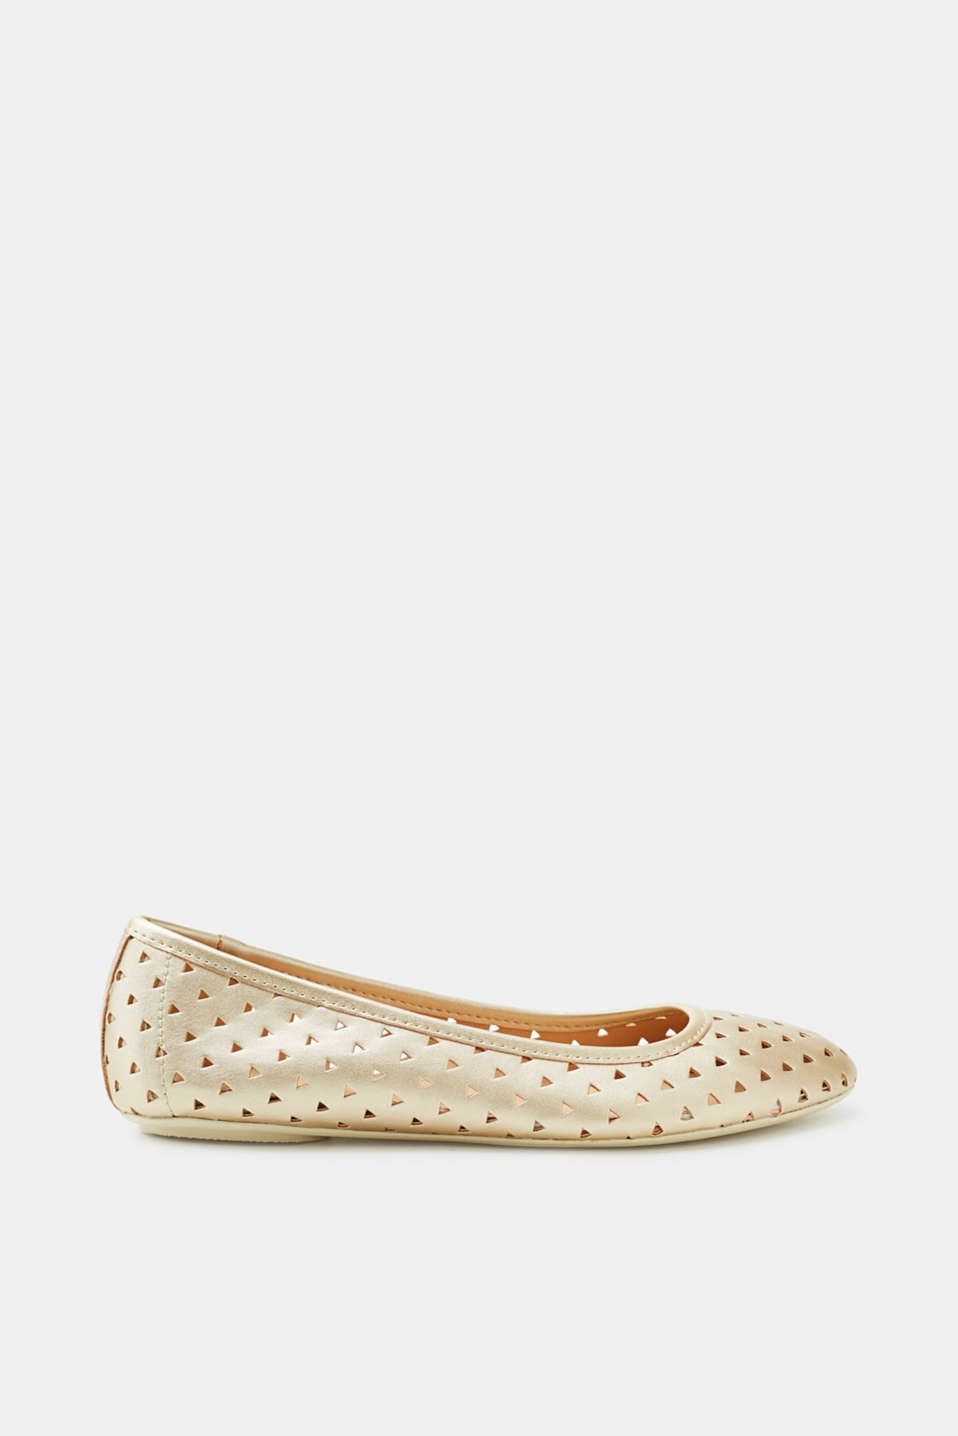 The geometric perforation gives these metallic ballerinas a stunning look.